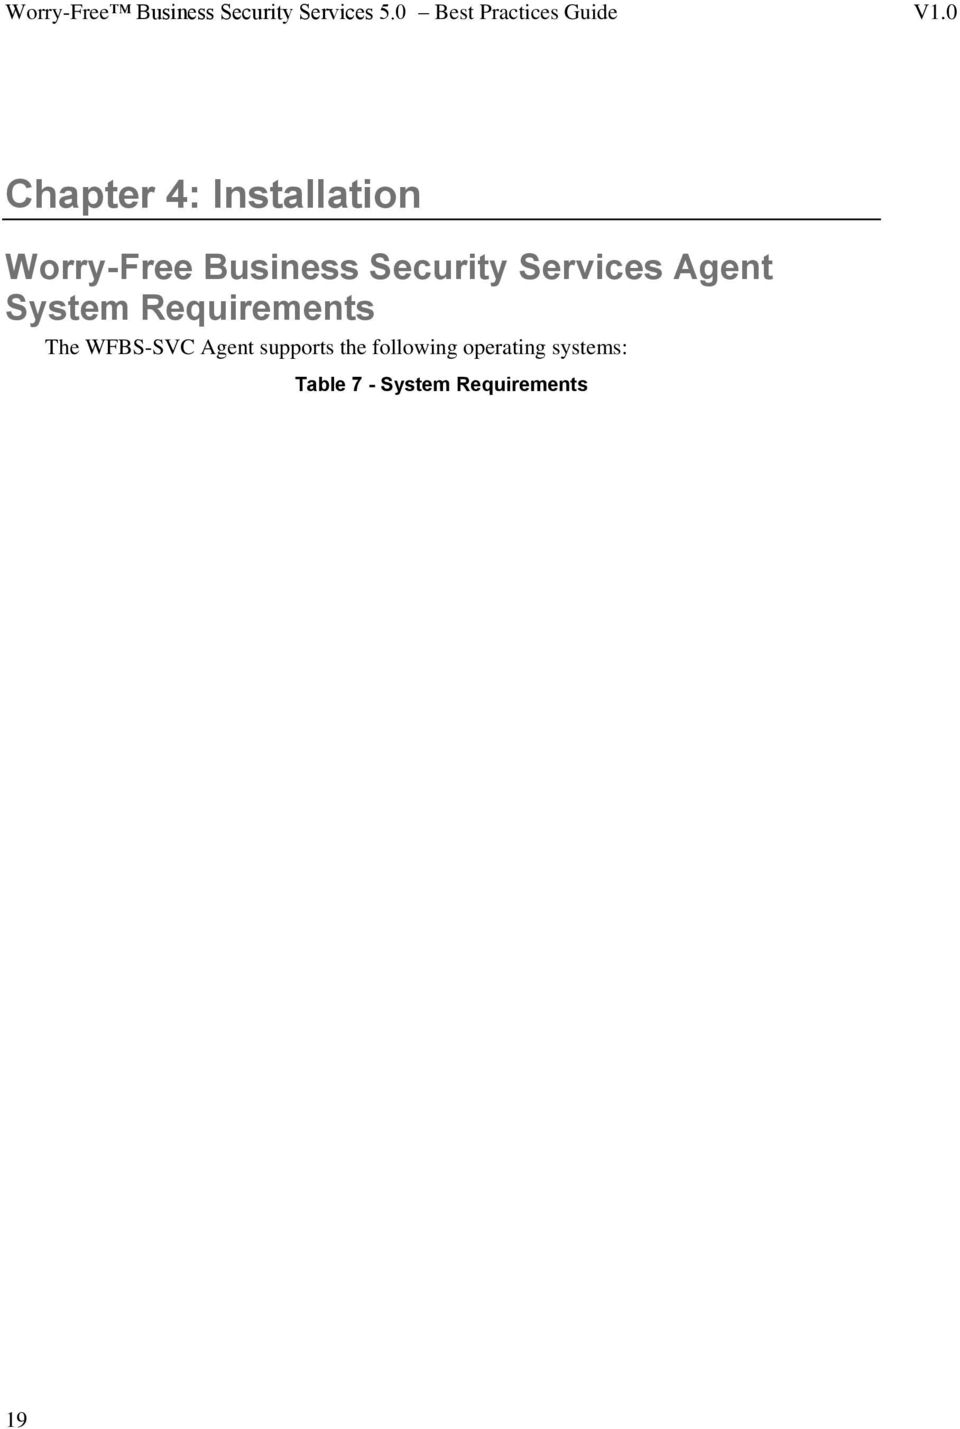 The WFBS-SVC Agent supports the following